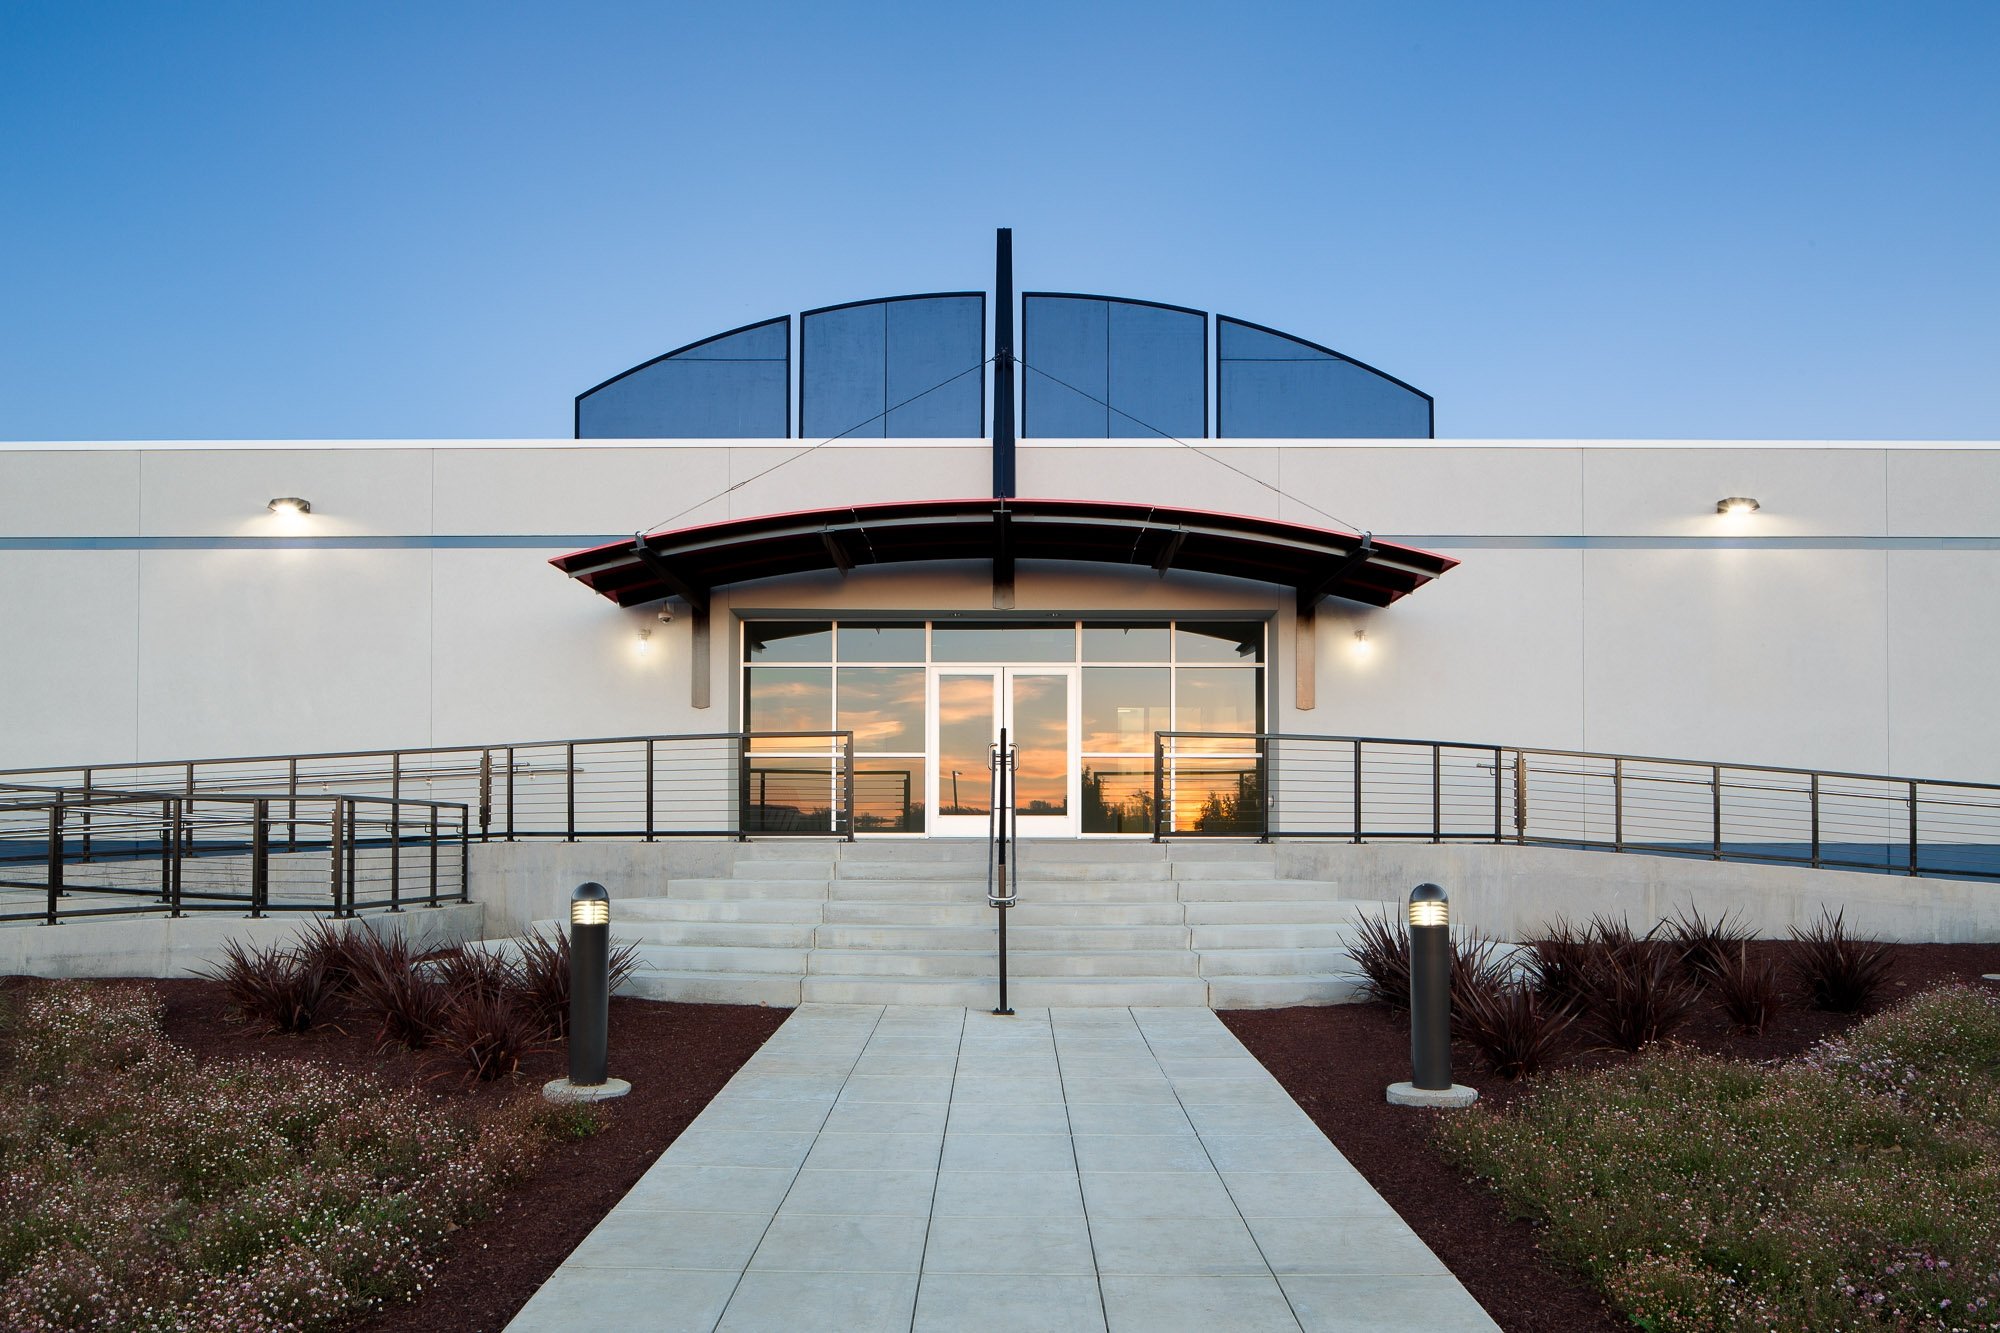 Commercial architectural photography